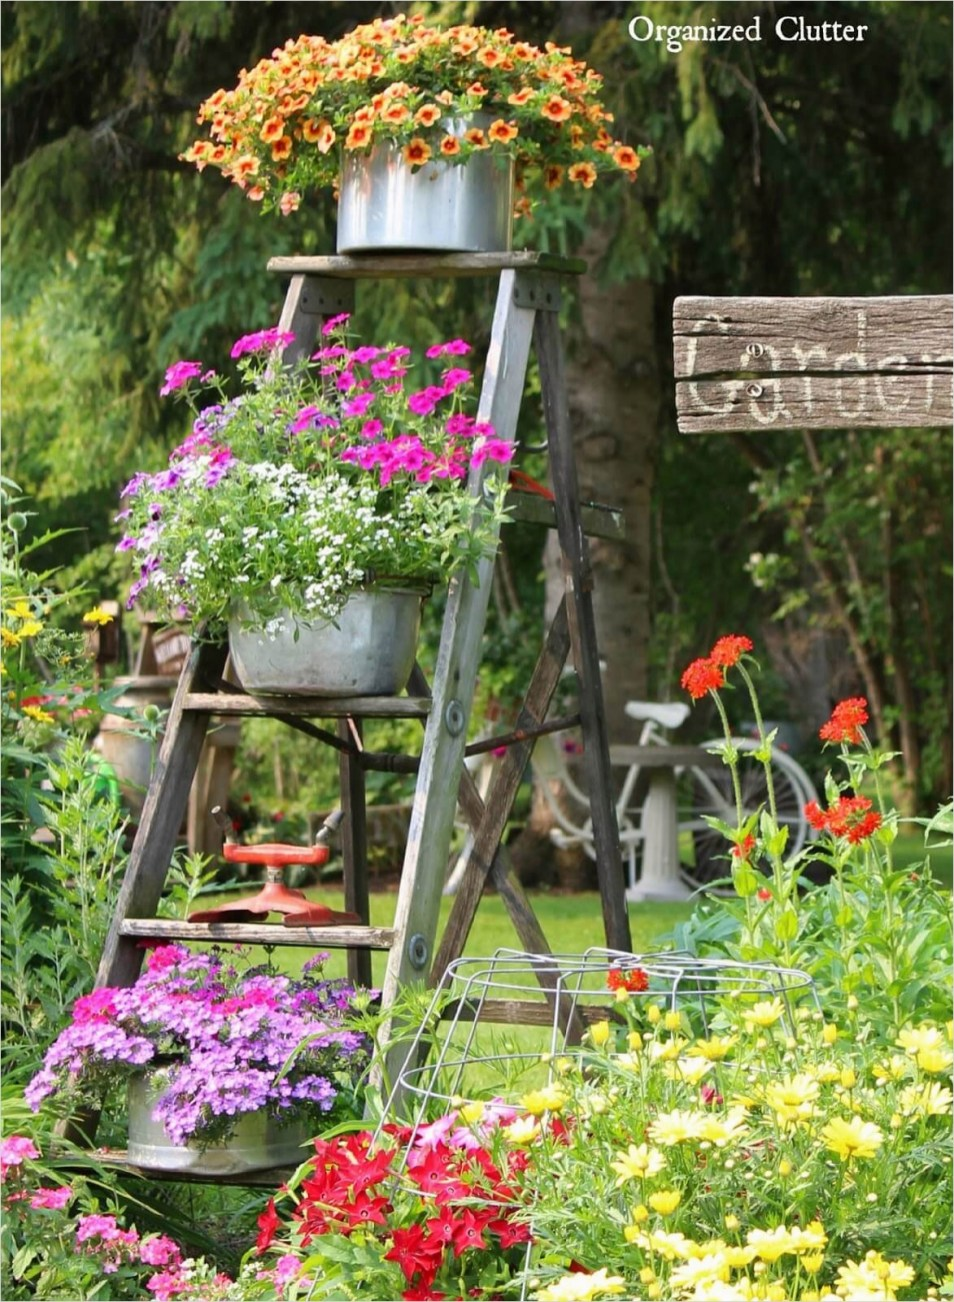 42 Beautiful Vintage Yard Decorating Ideas 28 34 Best Vintage Garden Decor Ideas and Designs for 2017 7